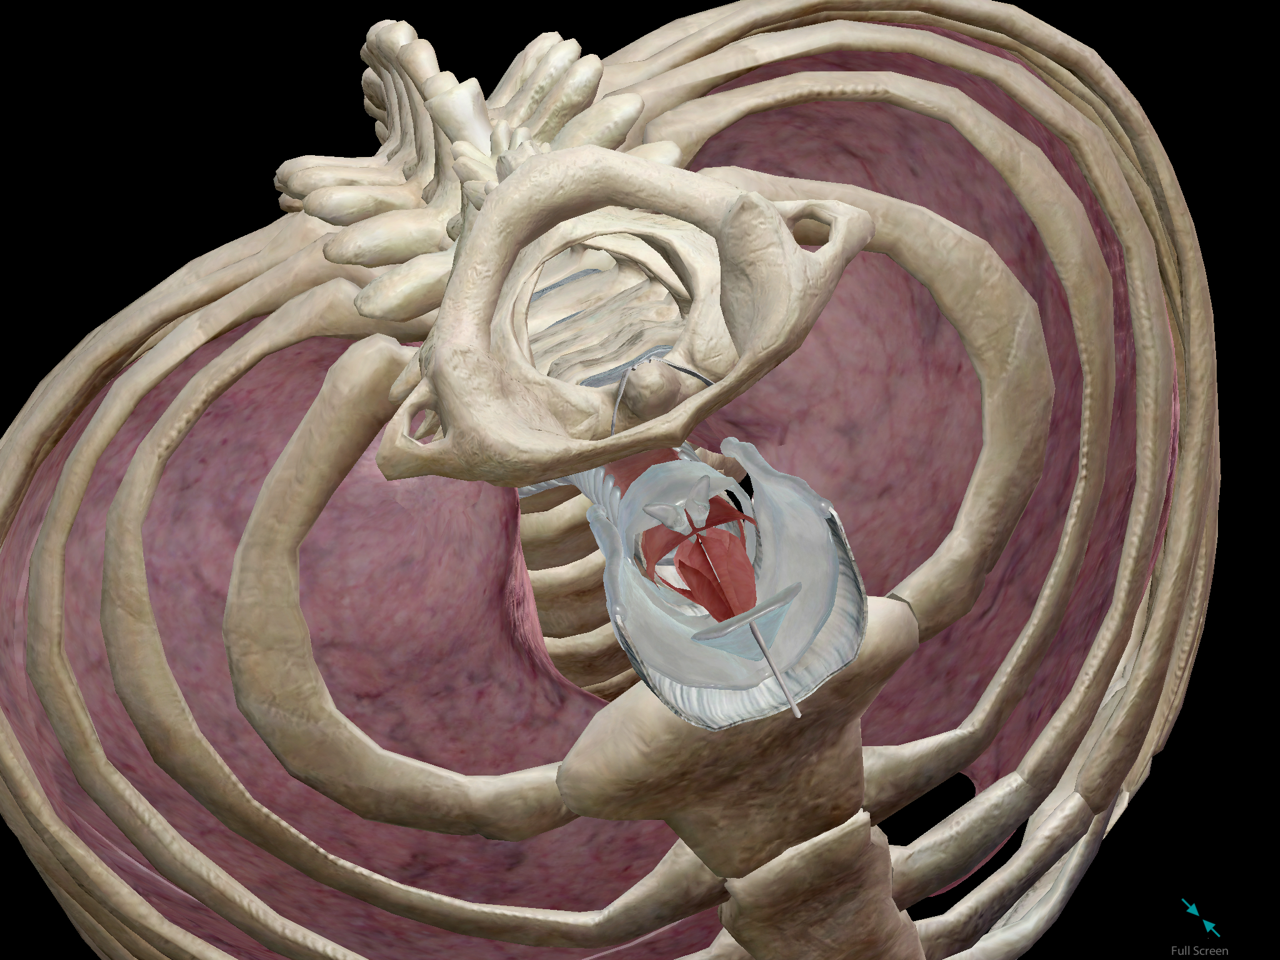 laryngeal-sksleton-lungs-respiratory.png